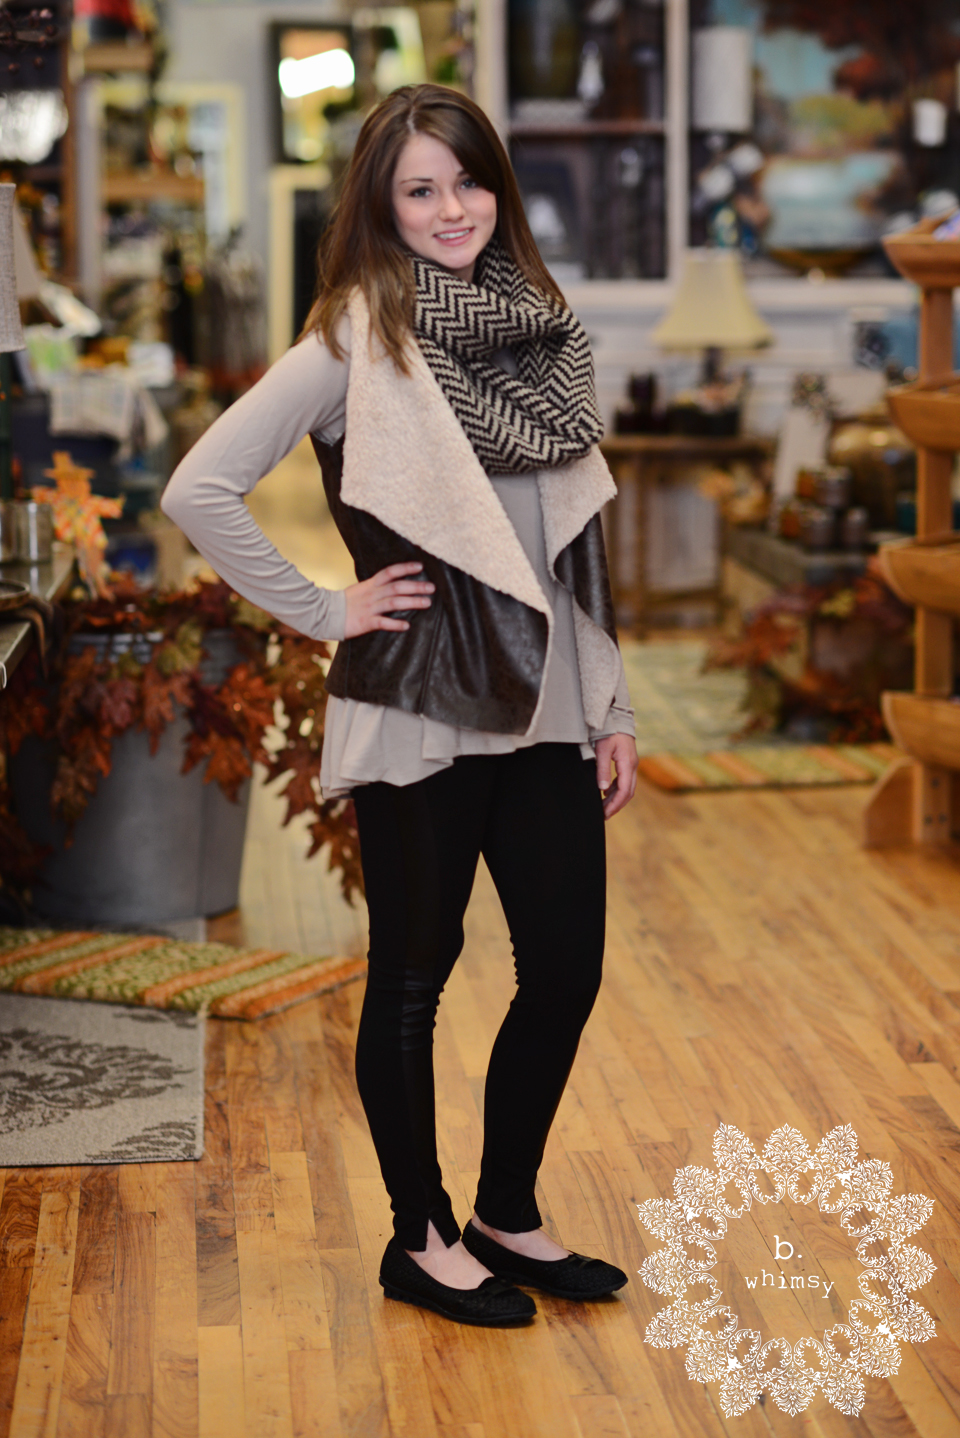 Women's Clothes Fall 2014 at B. Whimsy